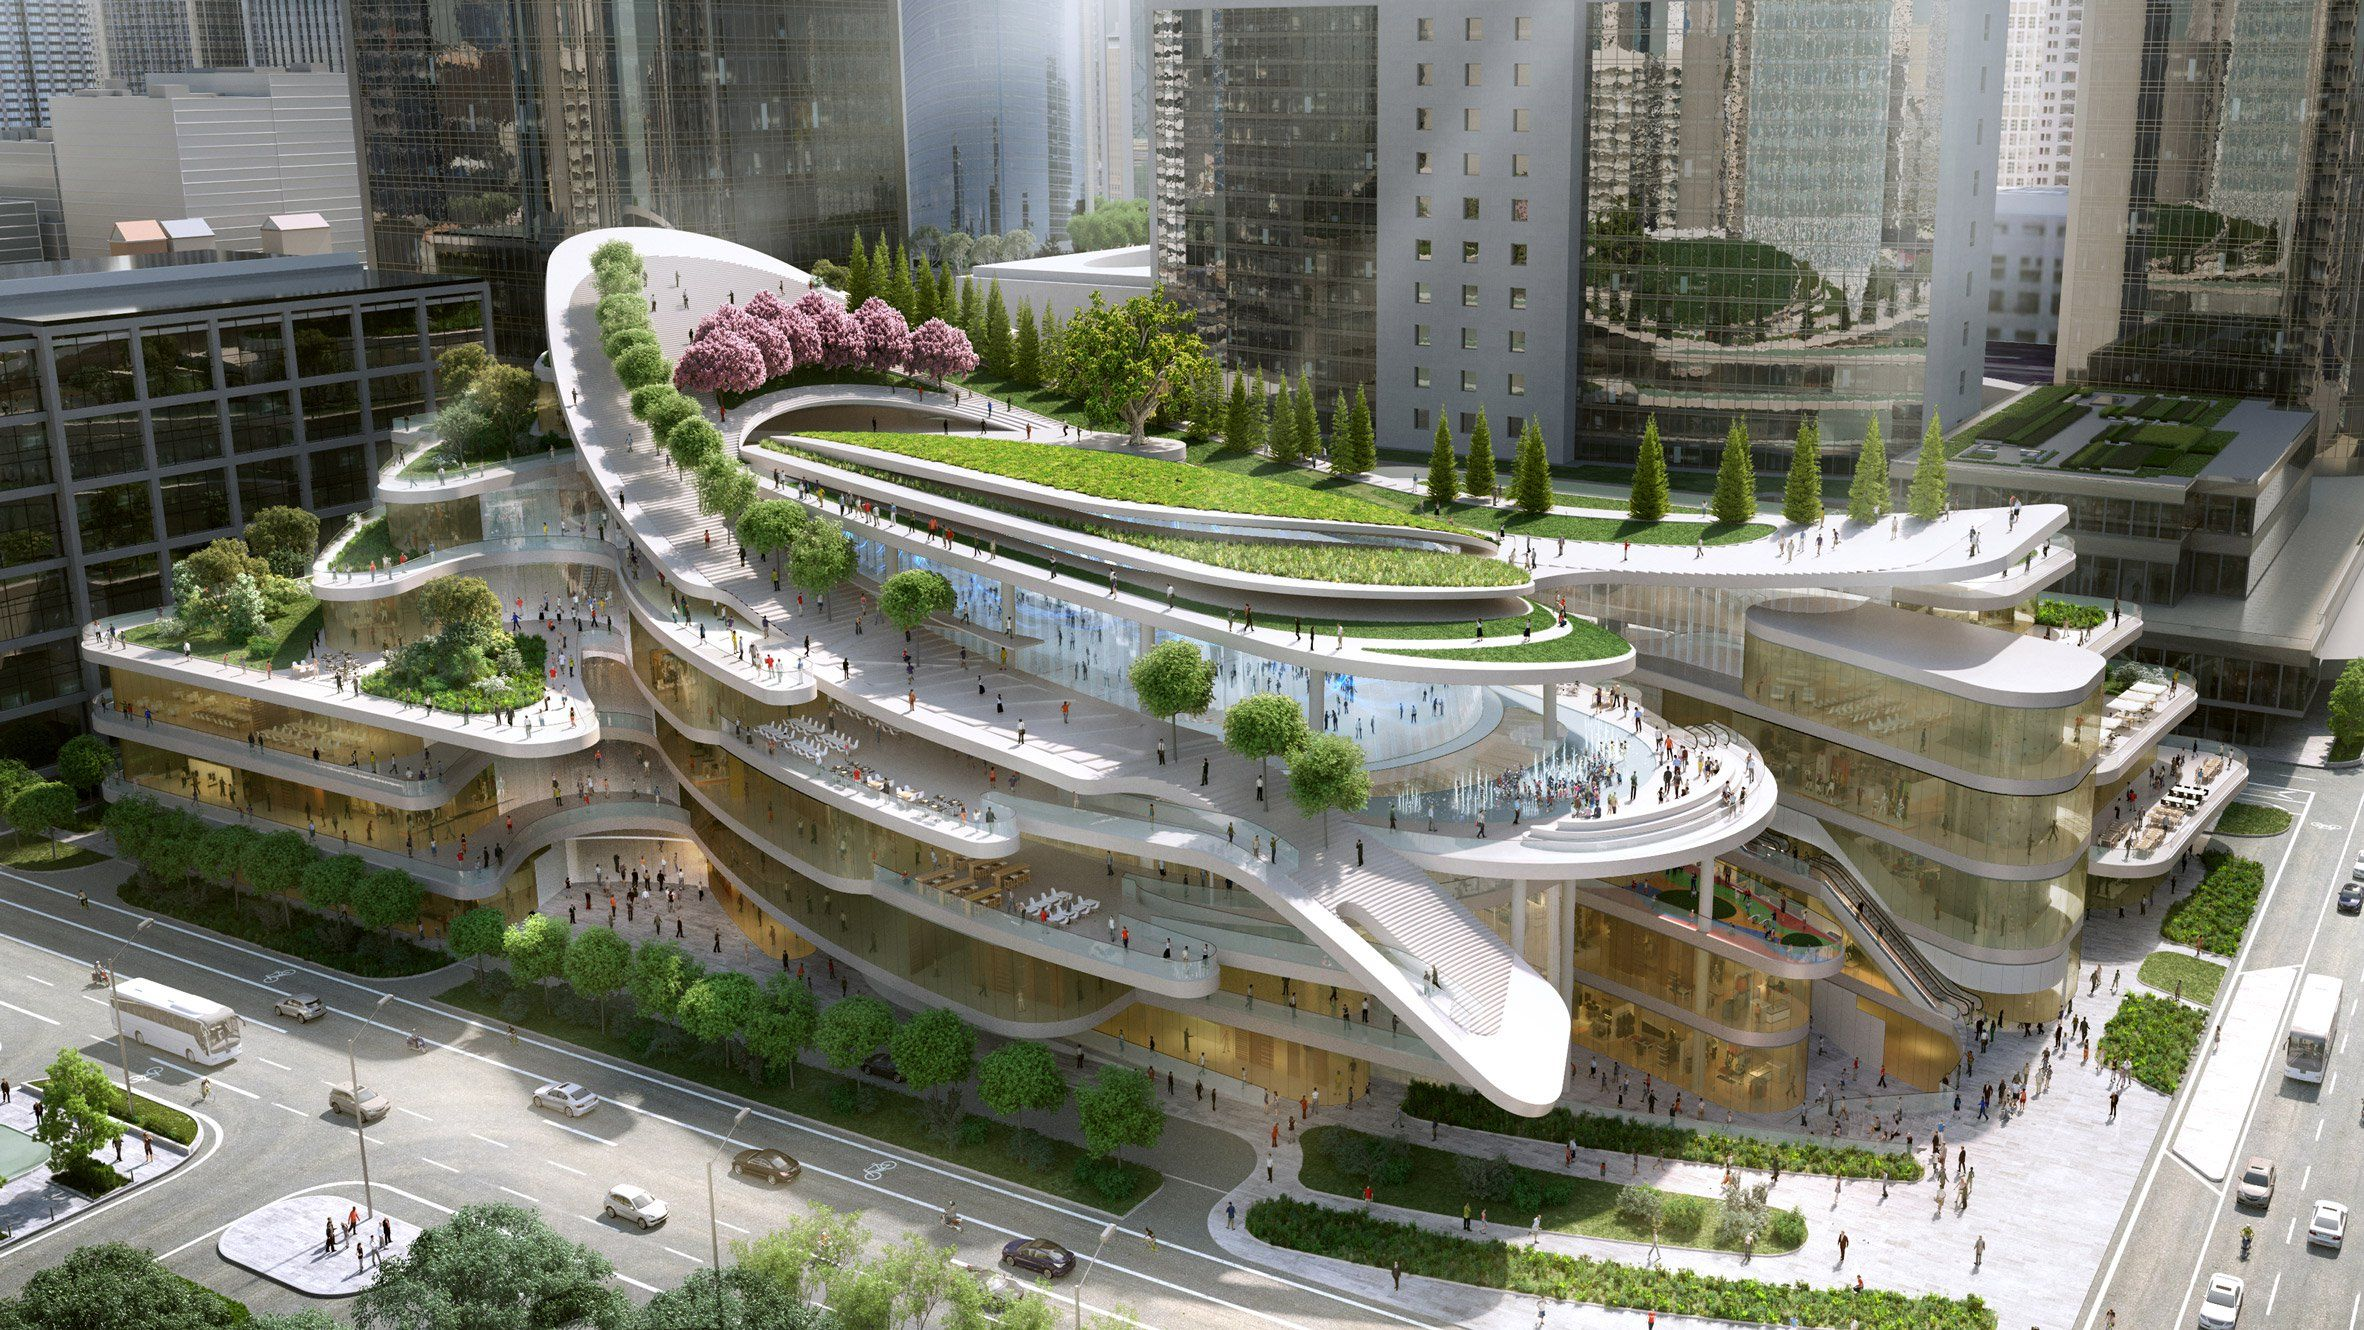 an undulating path will curve around the roof garden of this